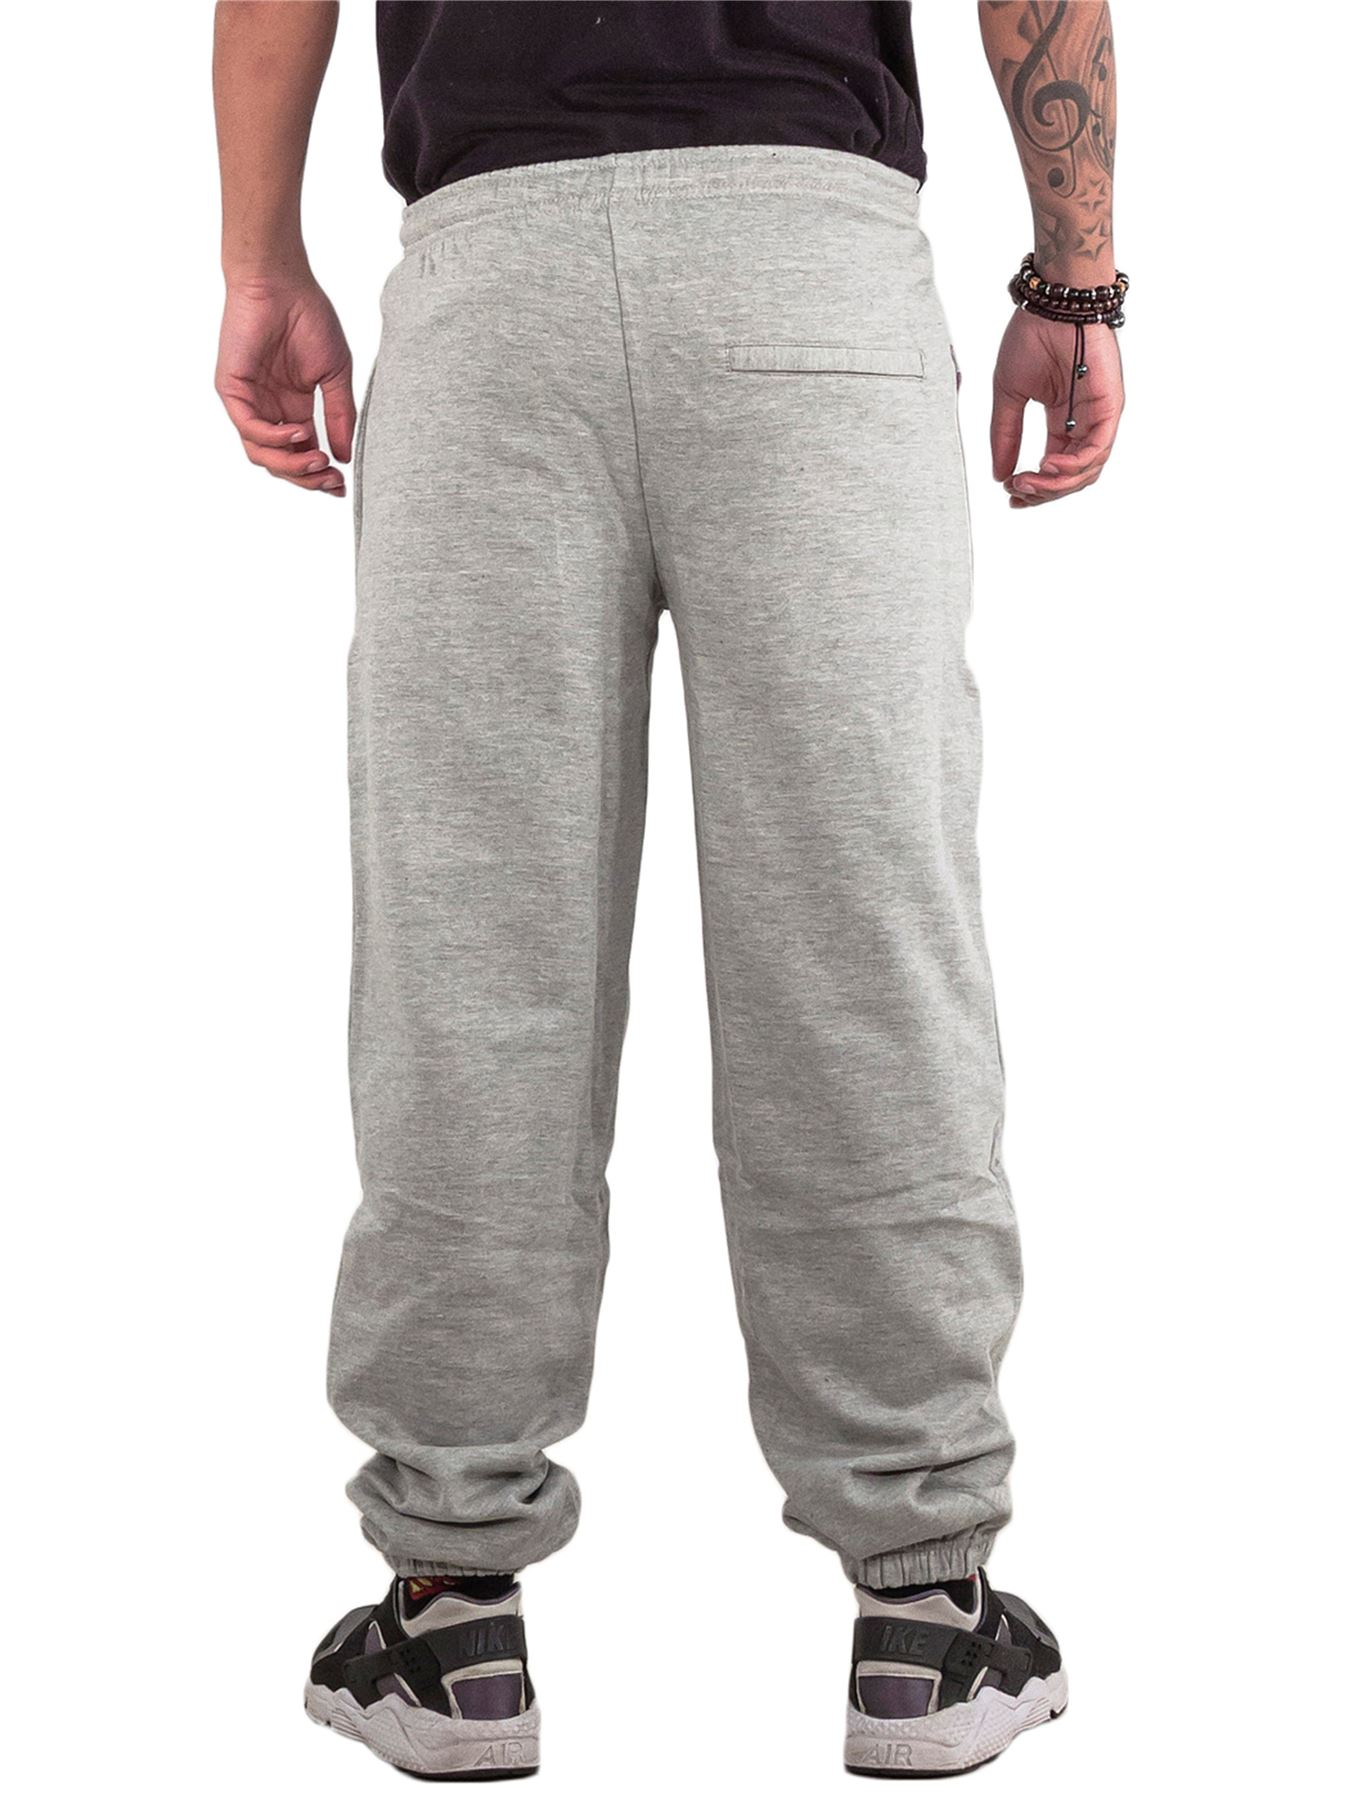 Mens-Fleece-Ribbed-Joggers-Tracksuit-Jogging-Bottom-Loose-Fit-Sweat-Pants-S-5XL thumbnail 8